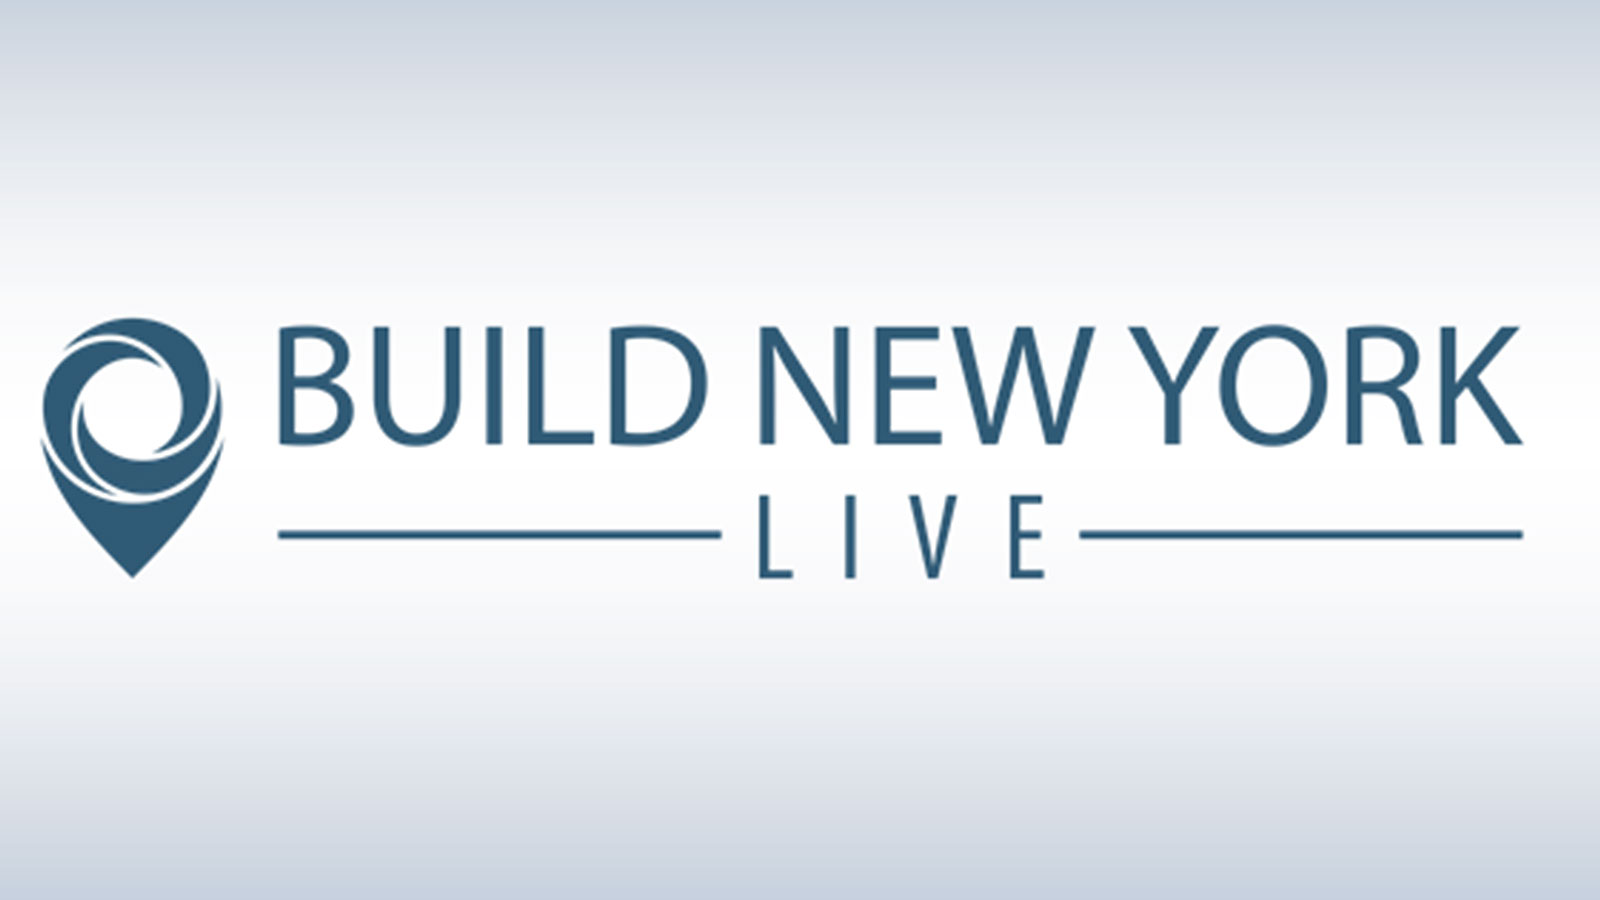 Build Earth Live Announces Award Ceremony for Build New York Live